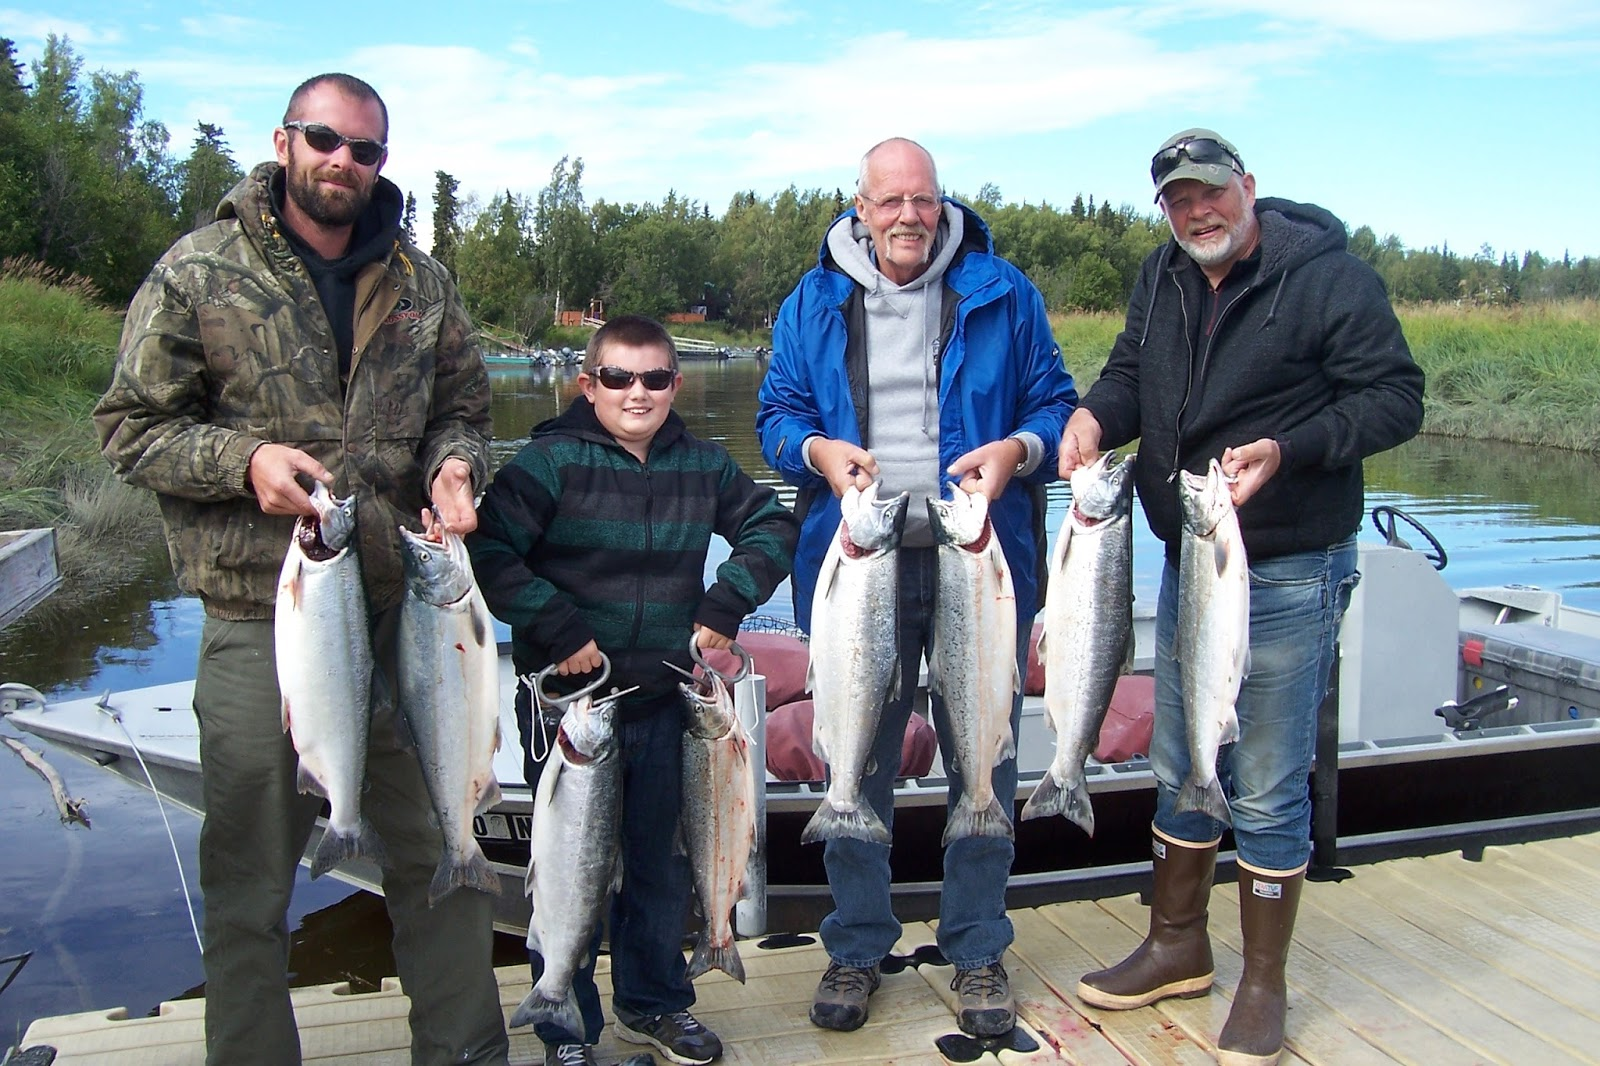 Beaver creek cabins guide service fishing report week for Silver creek fishing report